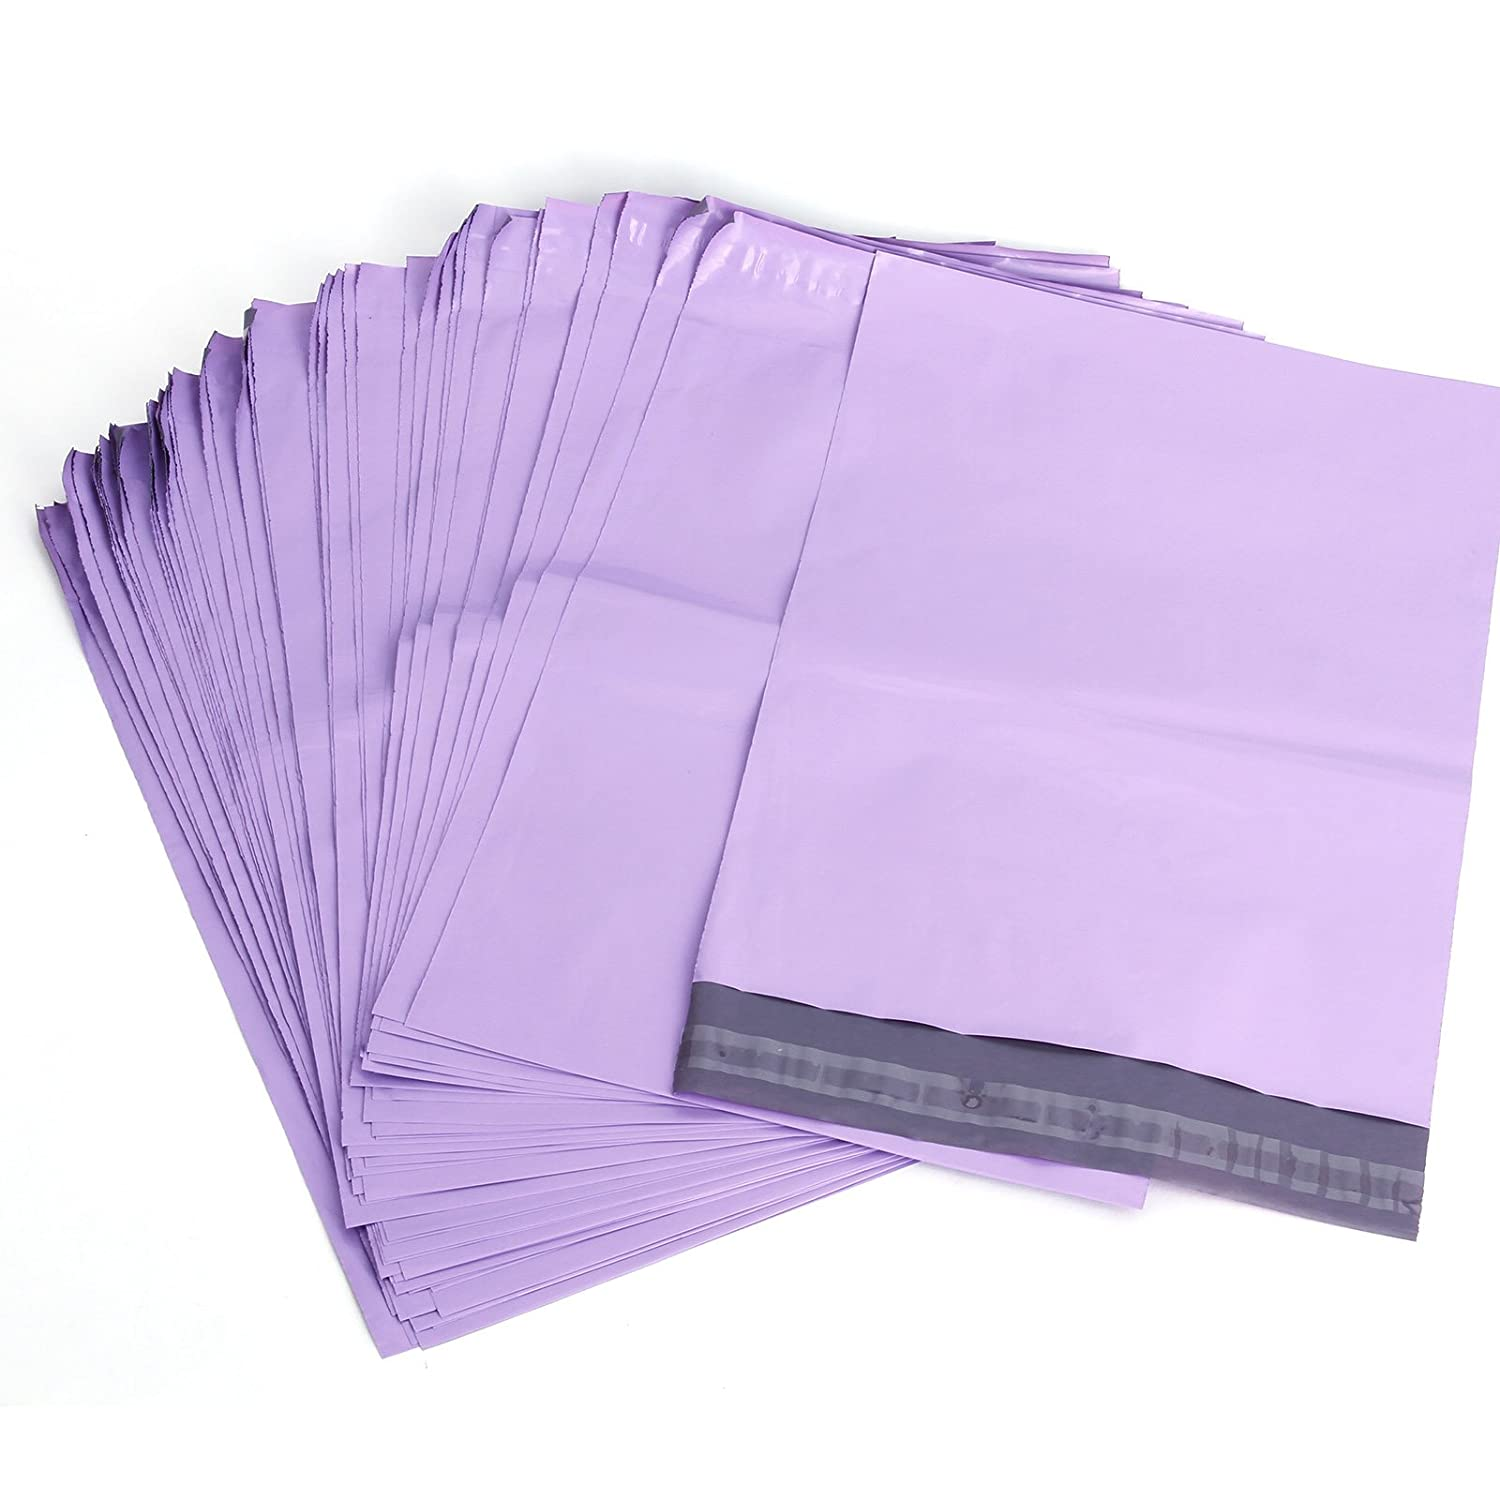 50 Mailing Postal Bags Purple Strong Plastic Polythene Self Seal Packing Packaging Postage Mail Sacks Envelopes Mailers